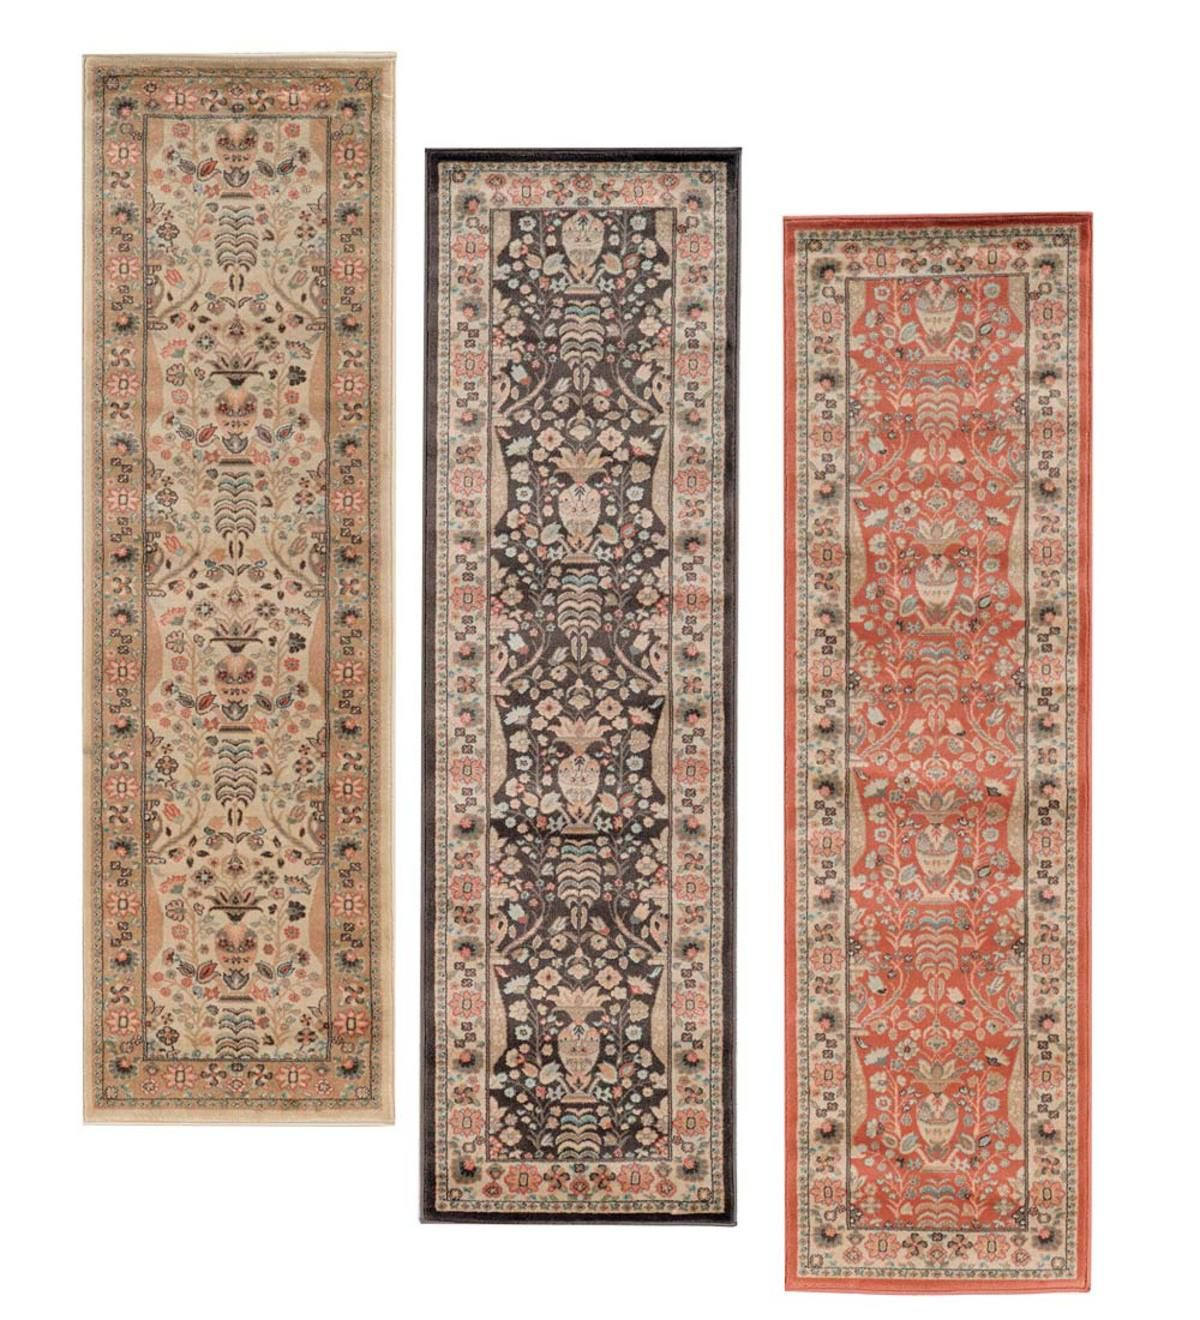 Our Beautiful Oak Lawn Rug Is Soft Like Wool With The Added Durability Of Polypropylene To Withstand Heavy Traffic Fibers Are Oak Lawn Polypropylene Rugs Rugs